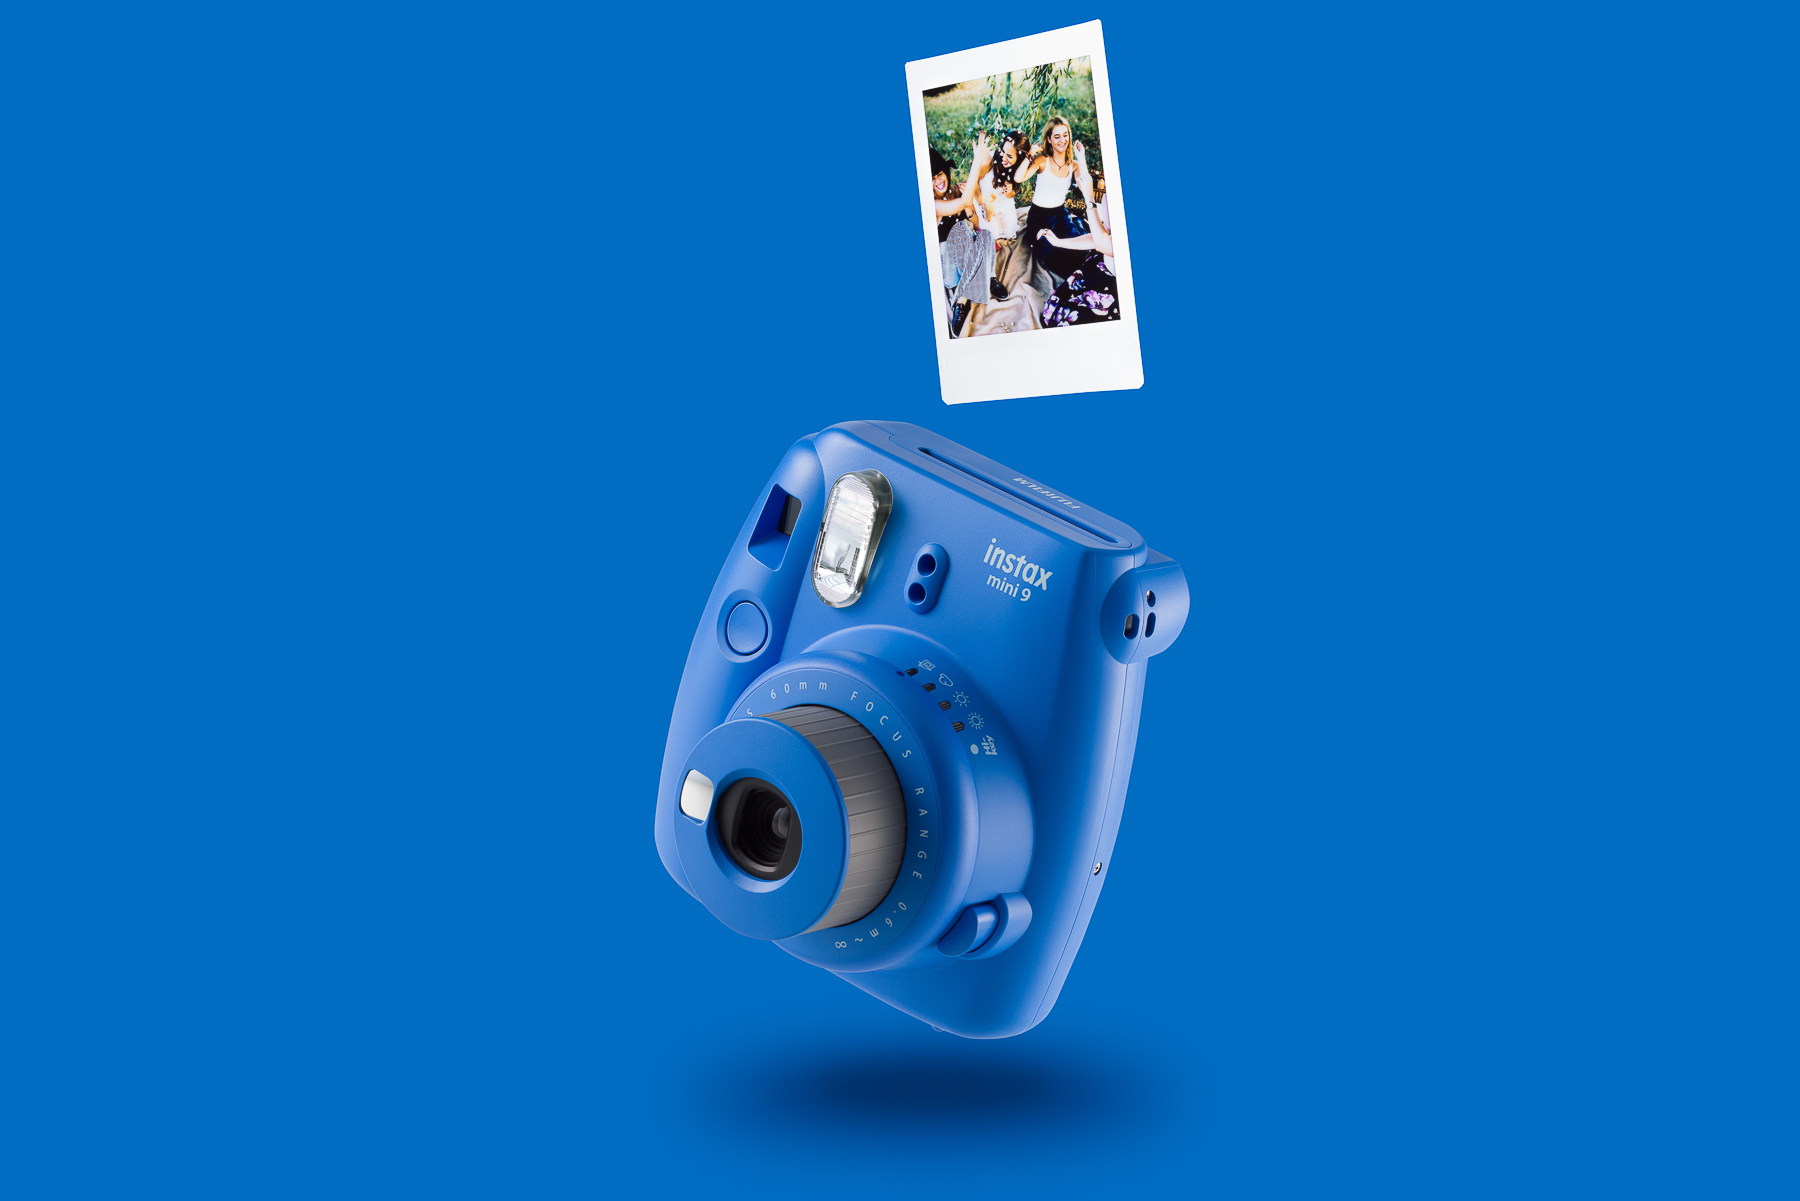 Blue mini 9 product photography on a matching blue background